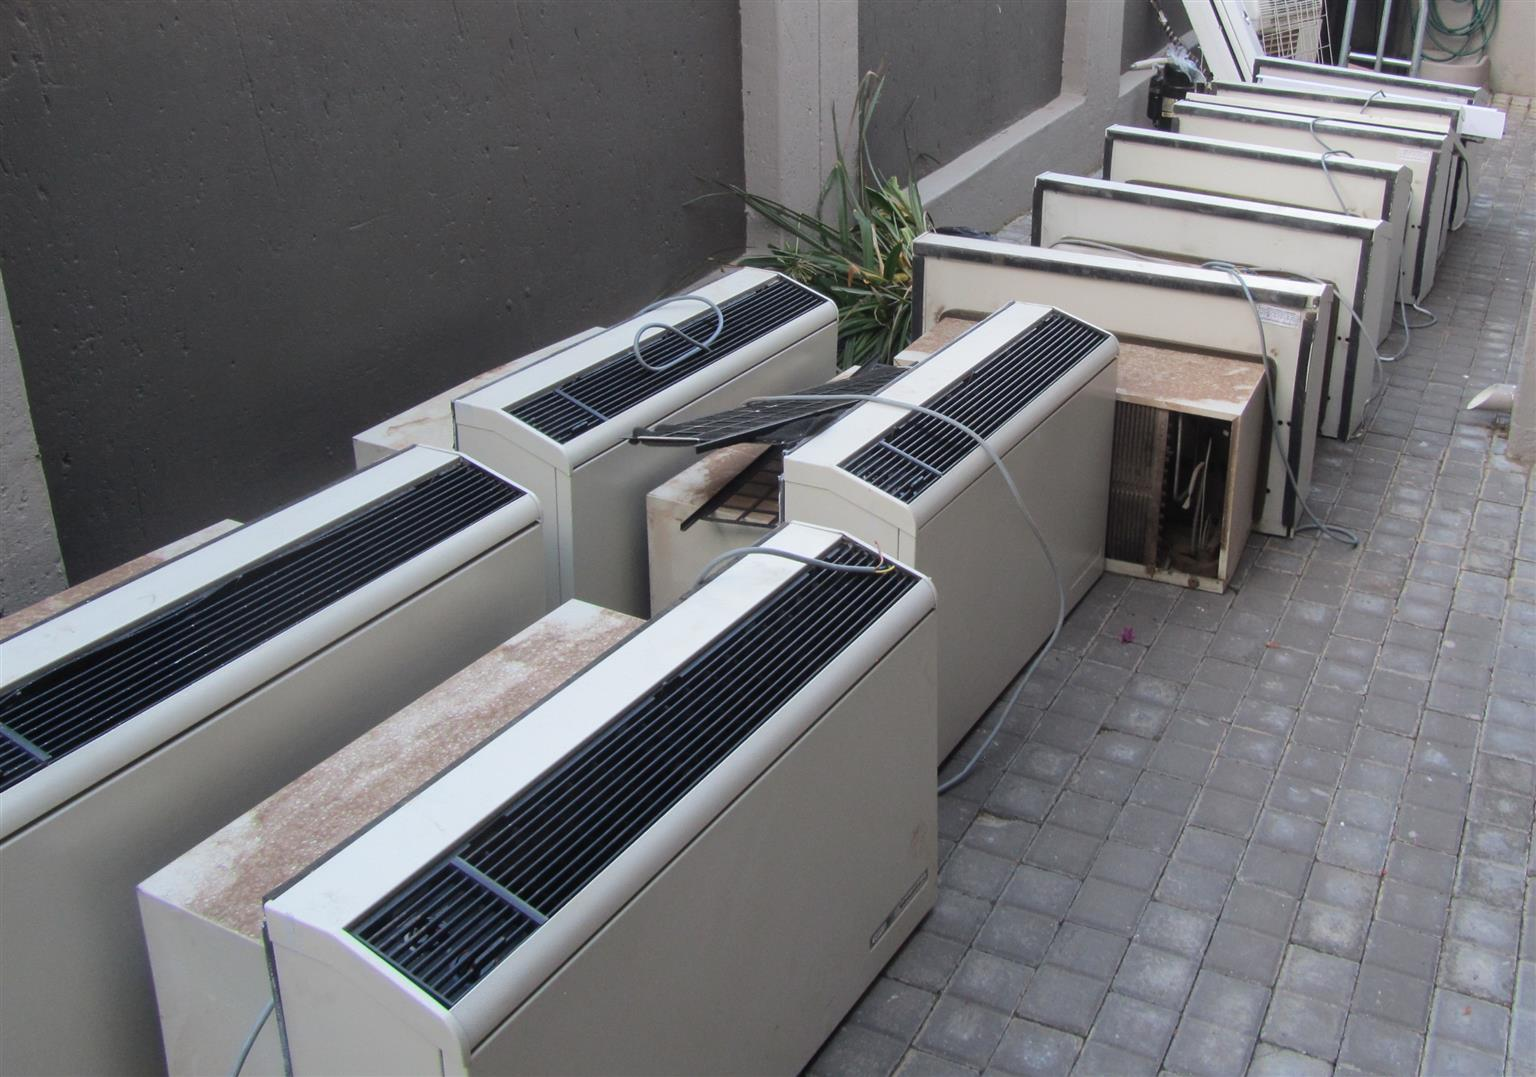 AIR CONDITIONERS - REFURBISHED DEFY SILHOUETTE CONSOLE UNITS